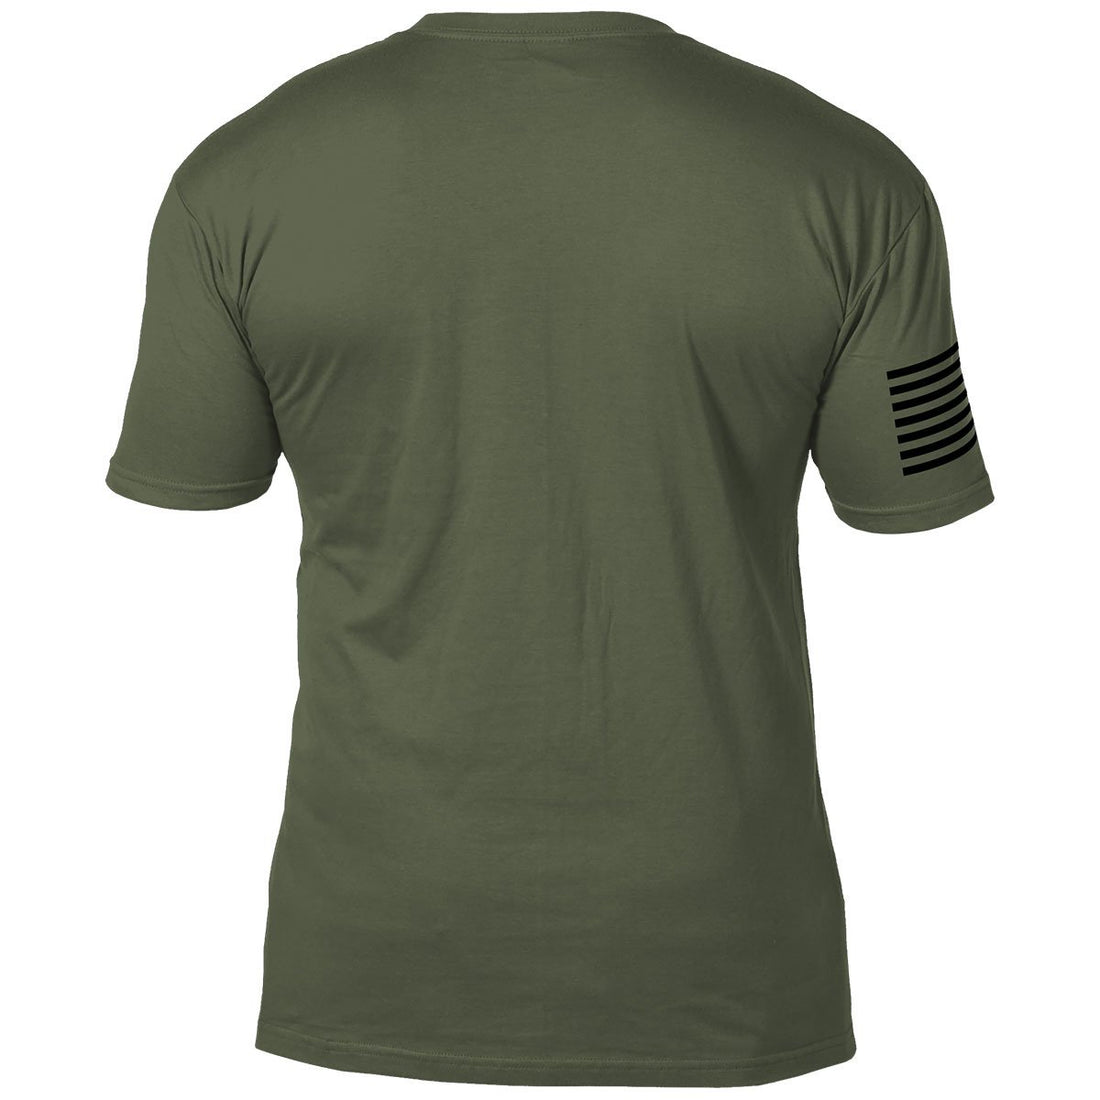 "USMC EGA ""ESSENTIAL"" T-Shirt (OD GREEN) - Marine Corps Direct"